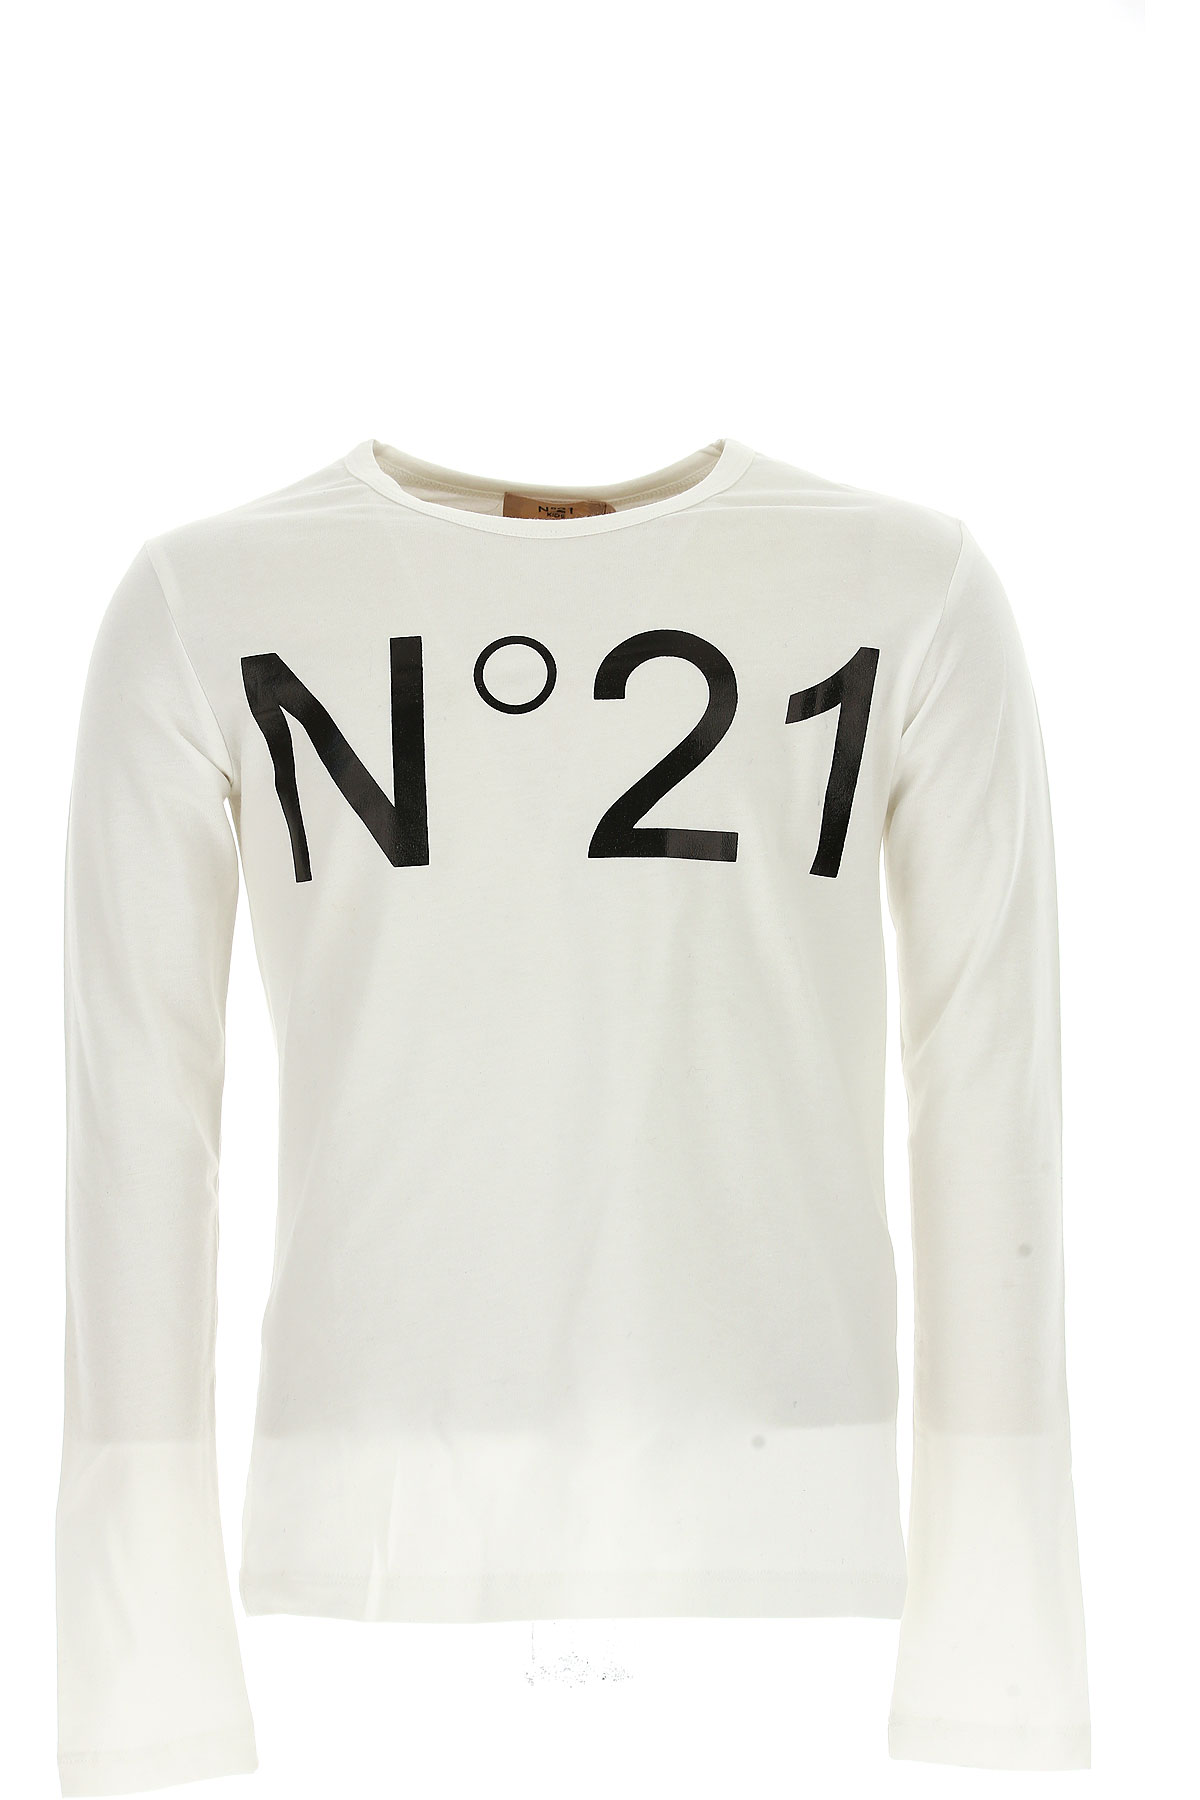 NO 21 Kids T-Shirt for Girls On Sale in Outlet, White, Cotton, 2019, 30 (6 Years) 38 (10 Years)